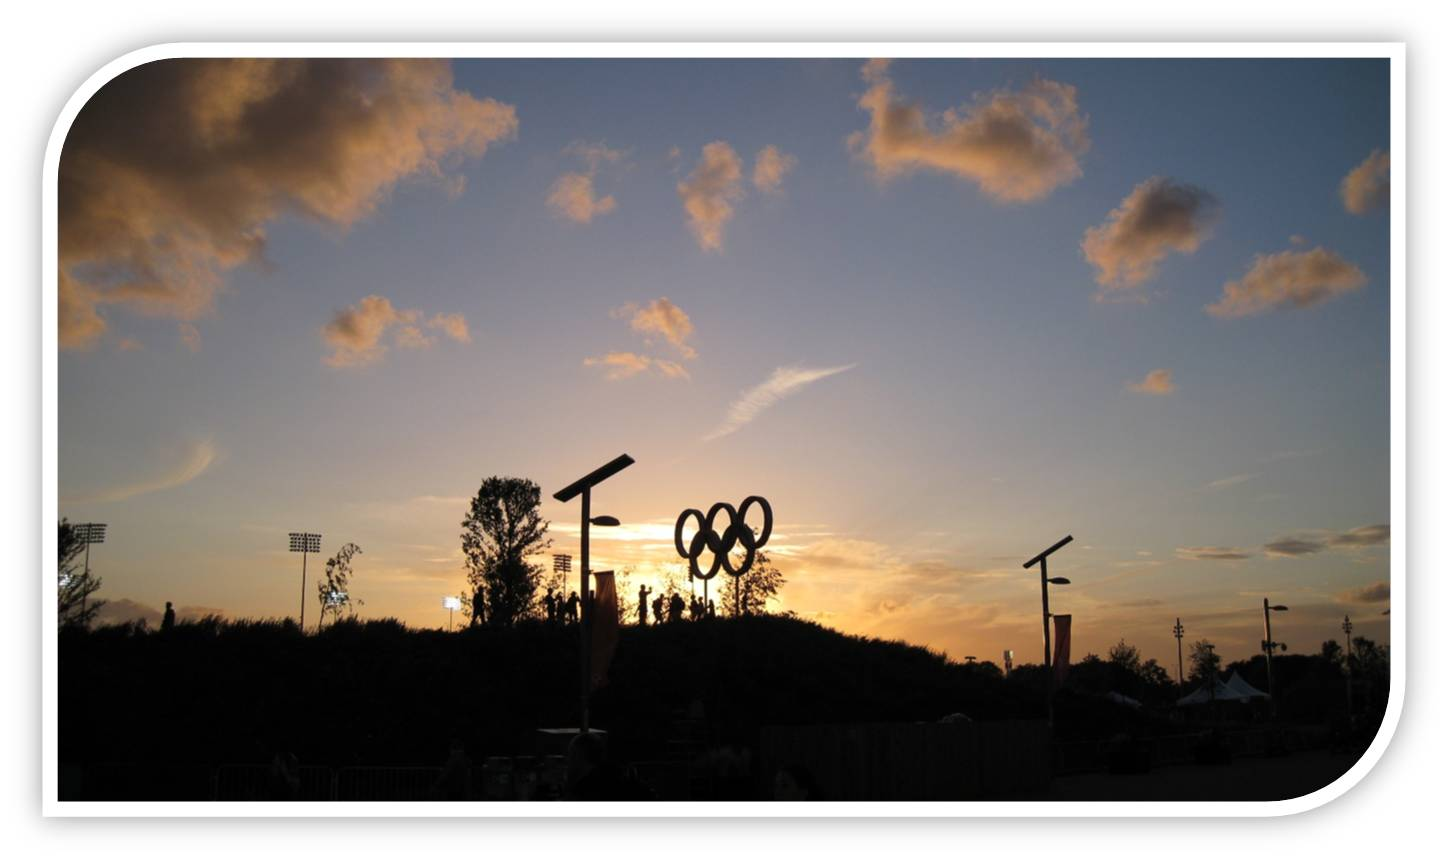 Sunset at the Olympic Park